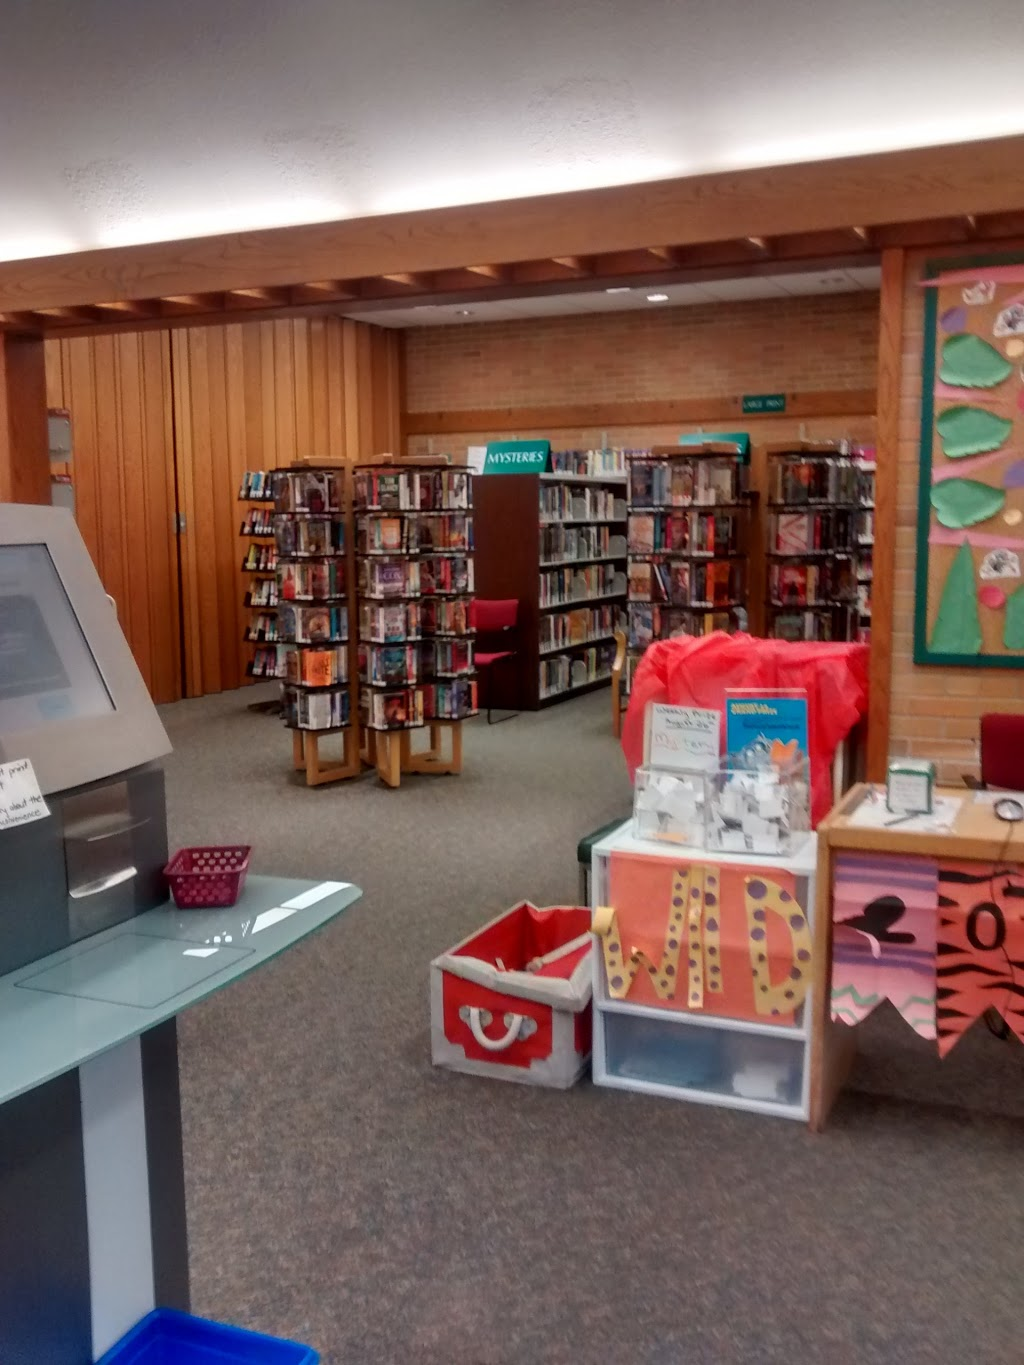 Brantford Public Library - St. Paul Branch | library | 441 St Paul Ave, Brantford, ON N3R 4N8, Canada | 5197532179 OR +1 519-753-2179